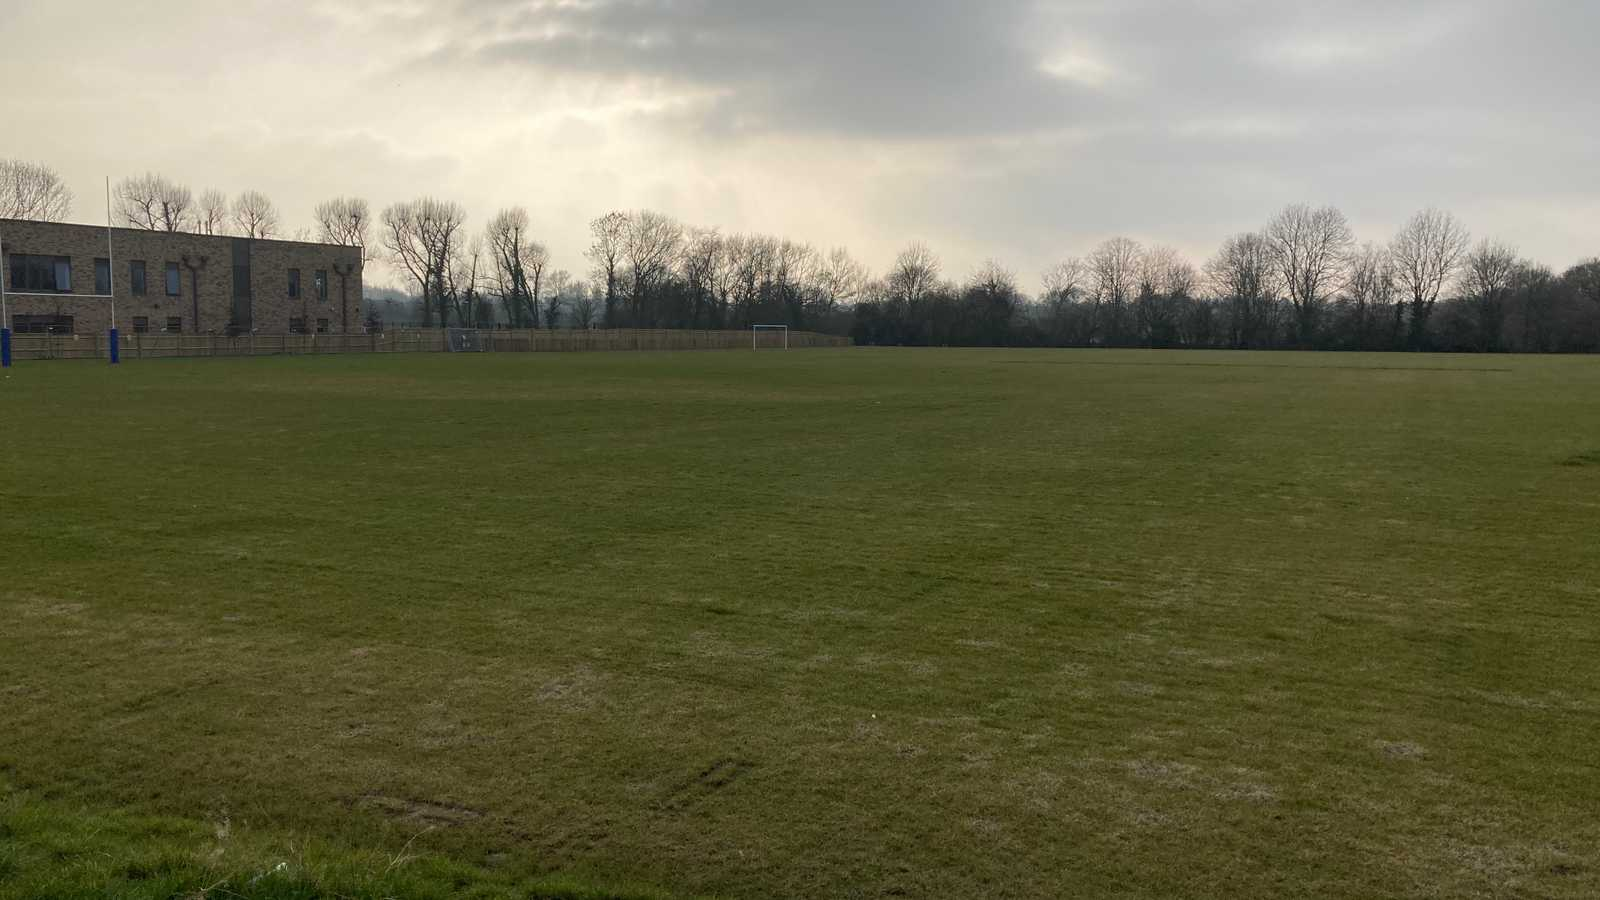 Football/Rugby Pitch